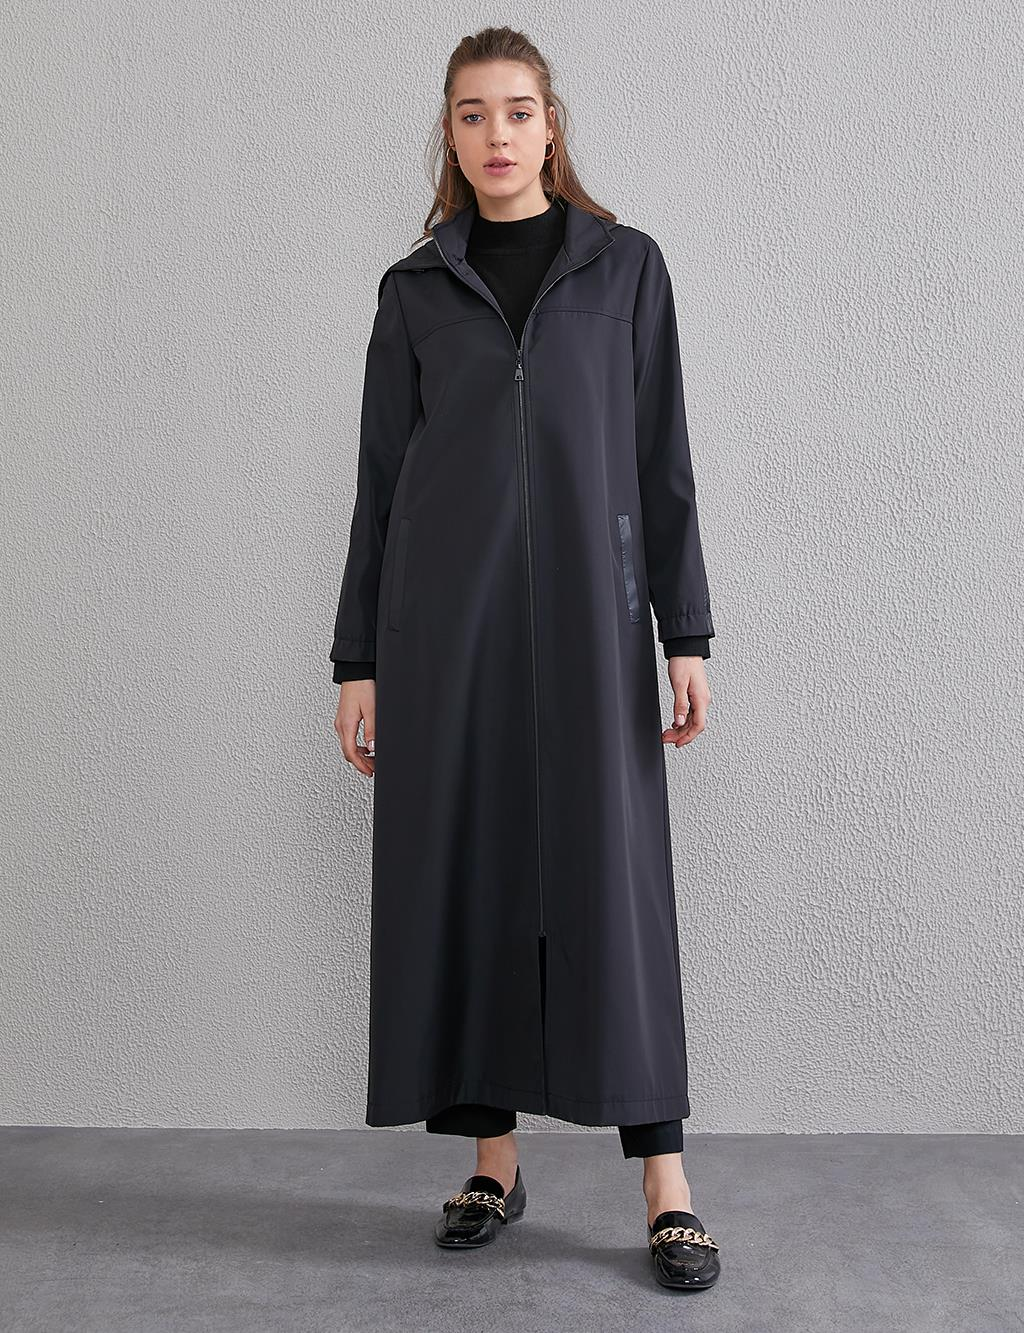 Hooded, Ribbon Detailed Trenchcoat A20 25098 Black